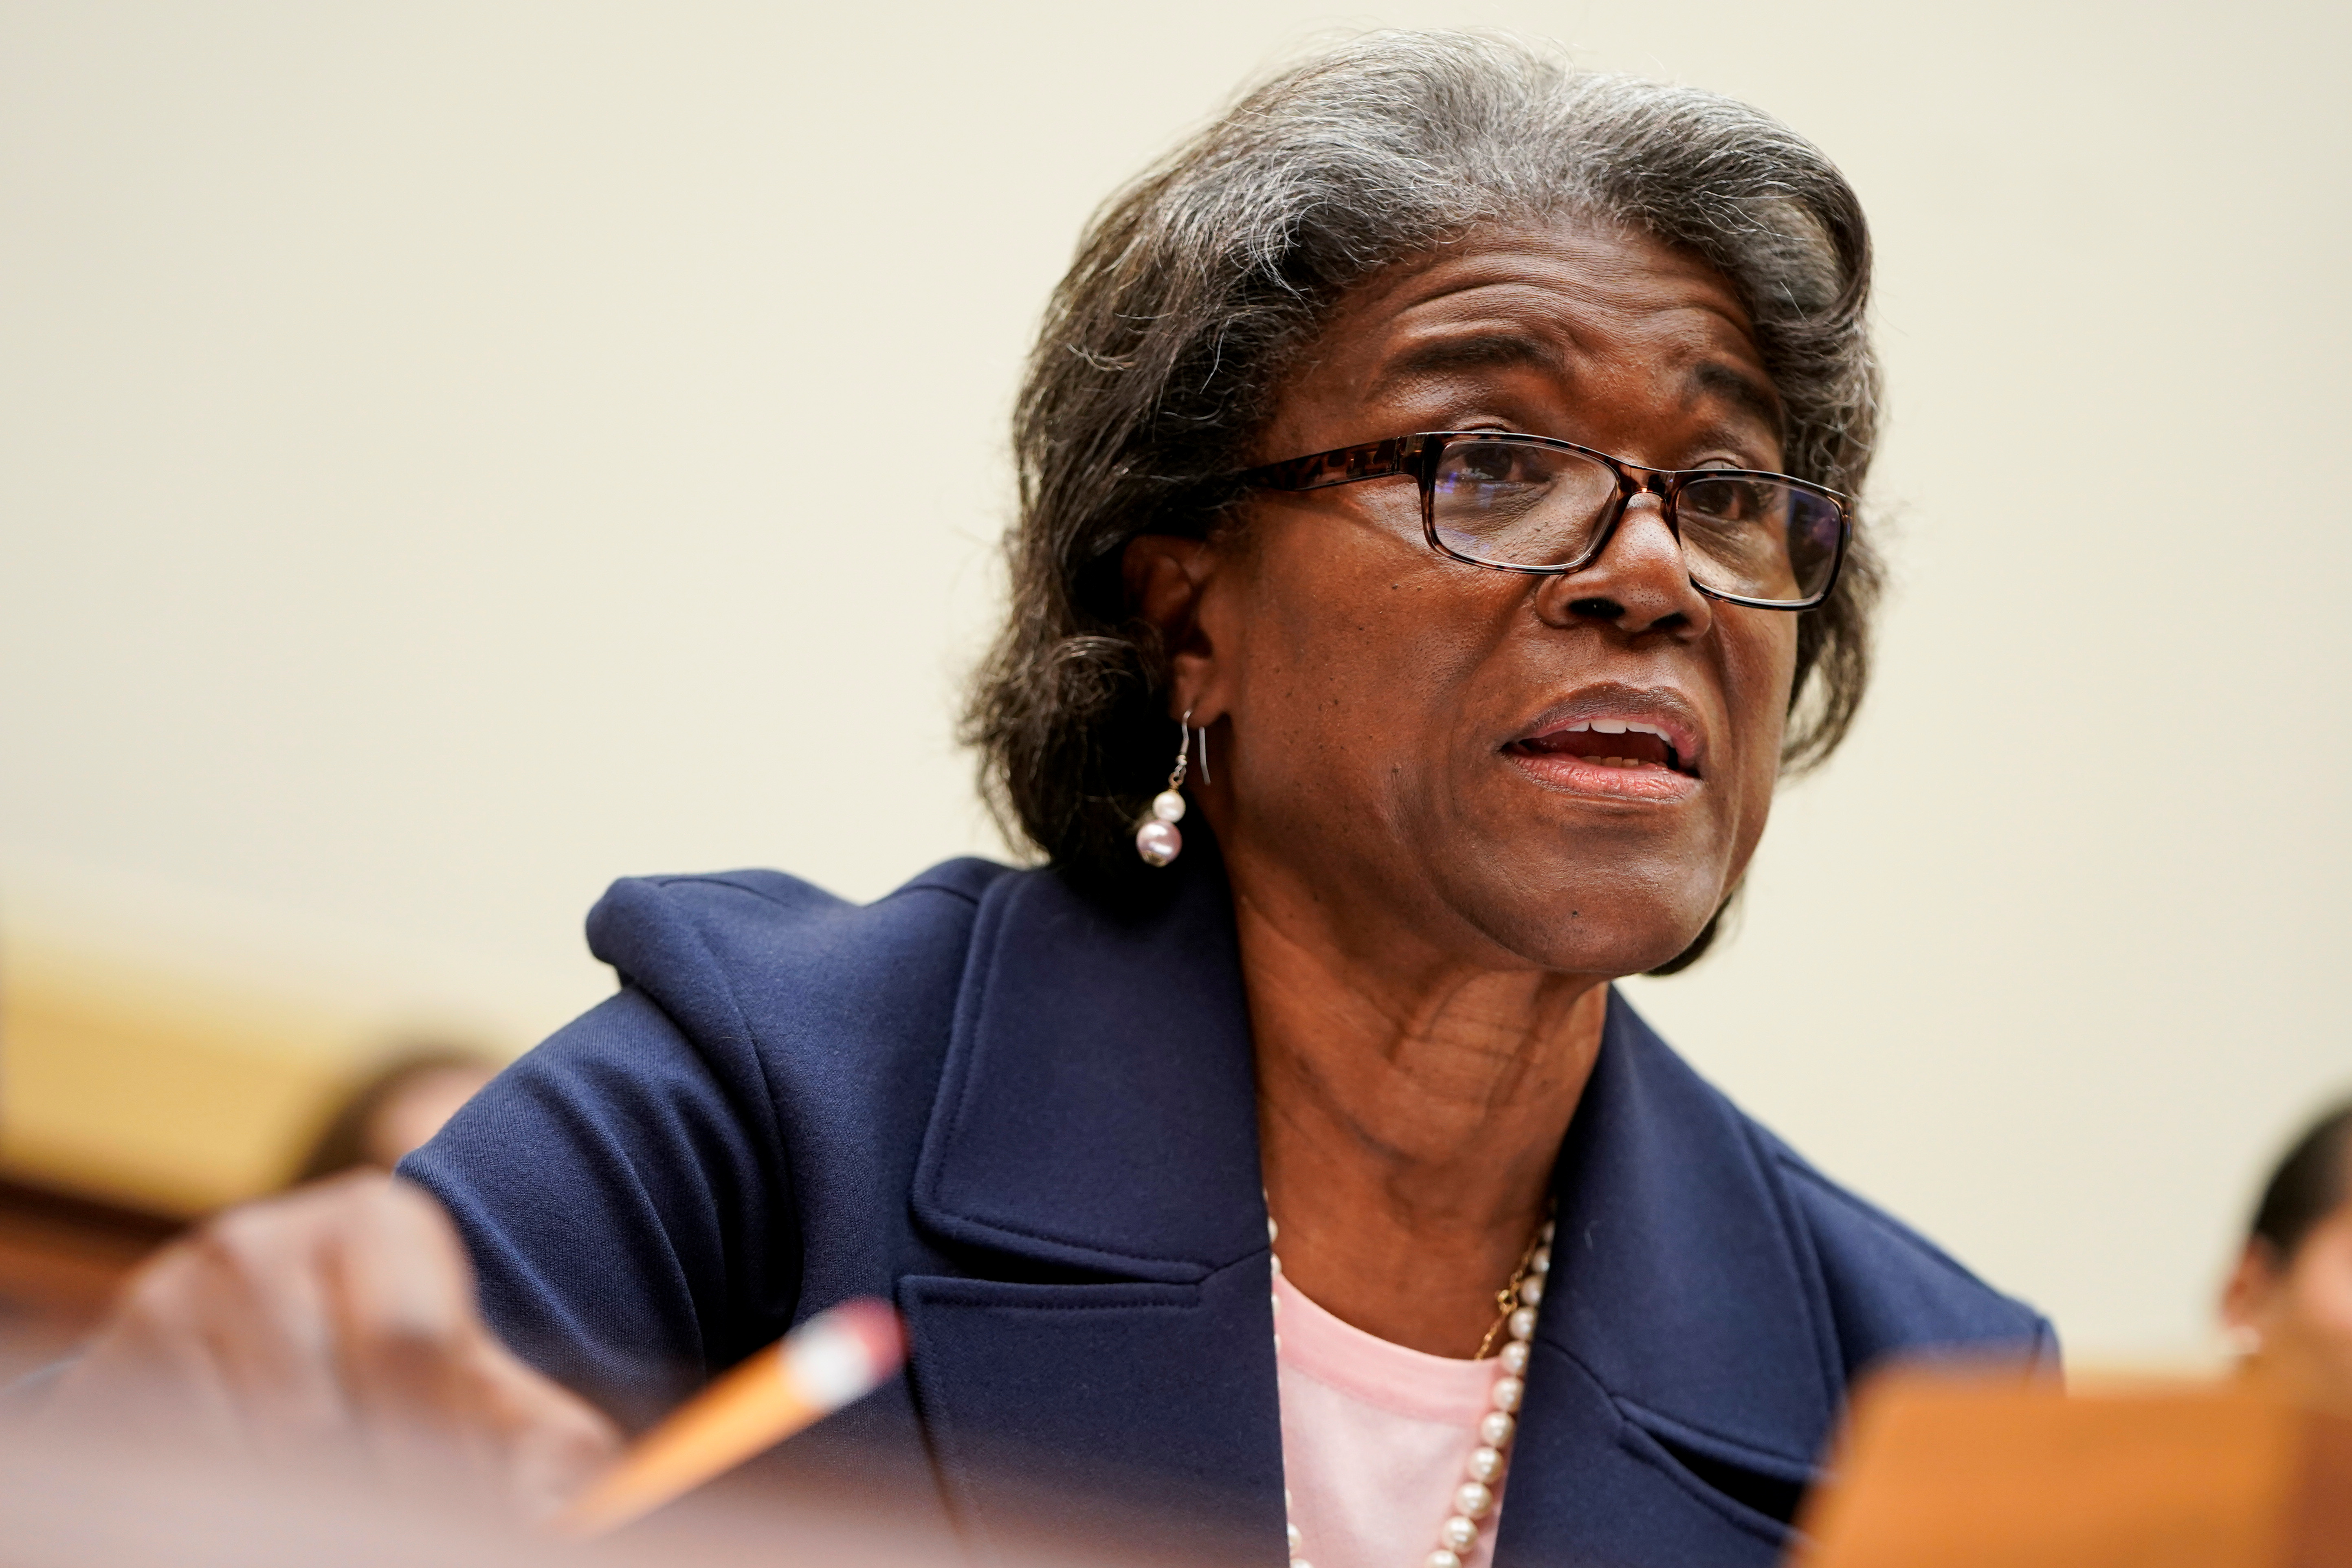 U.S. Ambassador to the United Nations Linda Thomas-Greenfield testifies to the House Foreign Affairs Committee on the Biden Administration's priorities for engagement with the United Nations on Capitol Hill in Washington, U.S., June 16, 2021.      REUTERS/Joshua Roberts